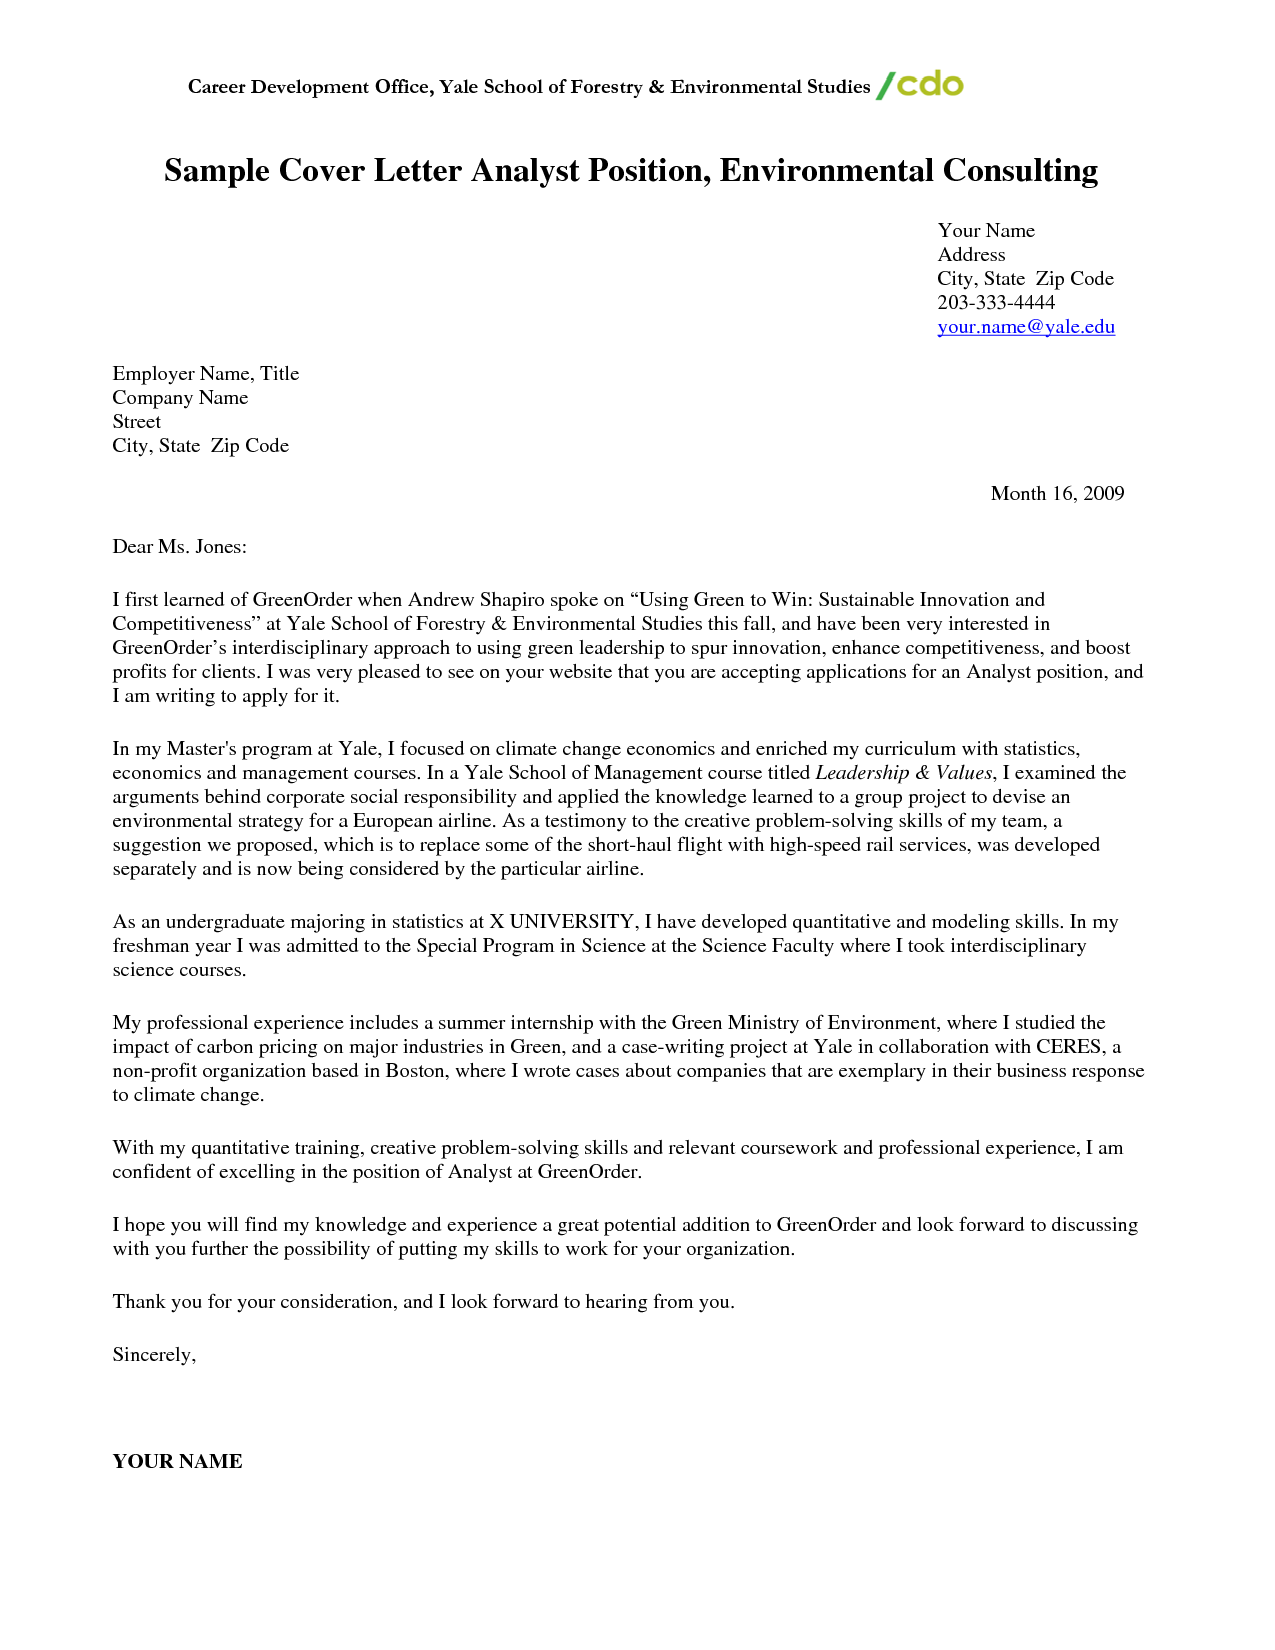 Consulting Cover Letter Sample Cover Letter Cover Letter Template Cover Letter Sample